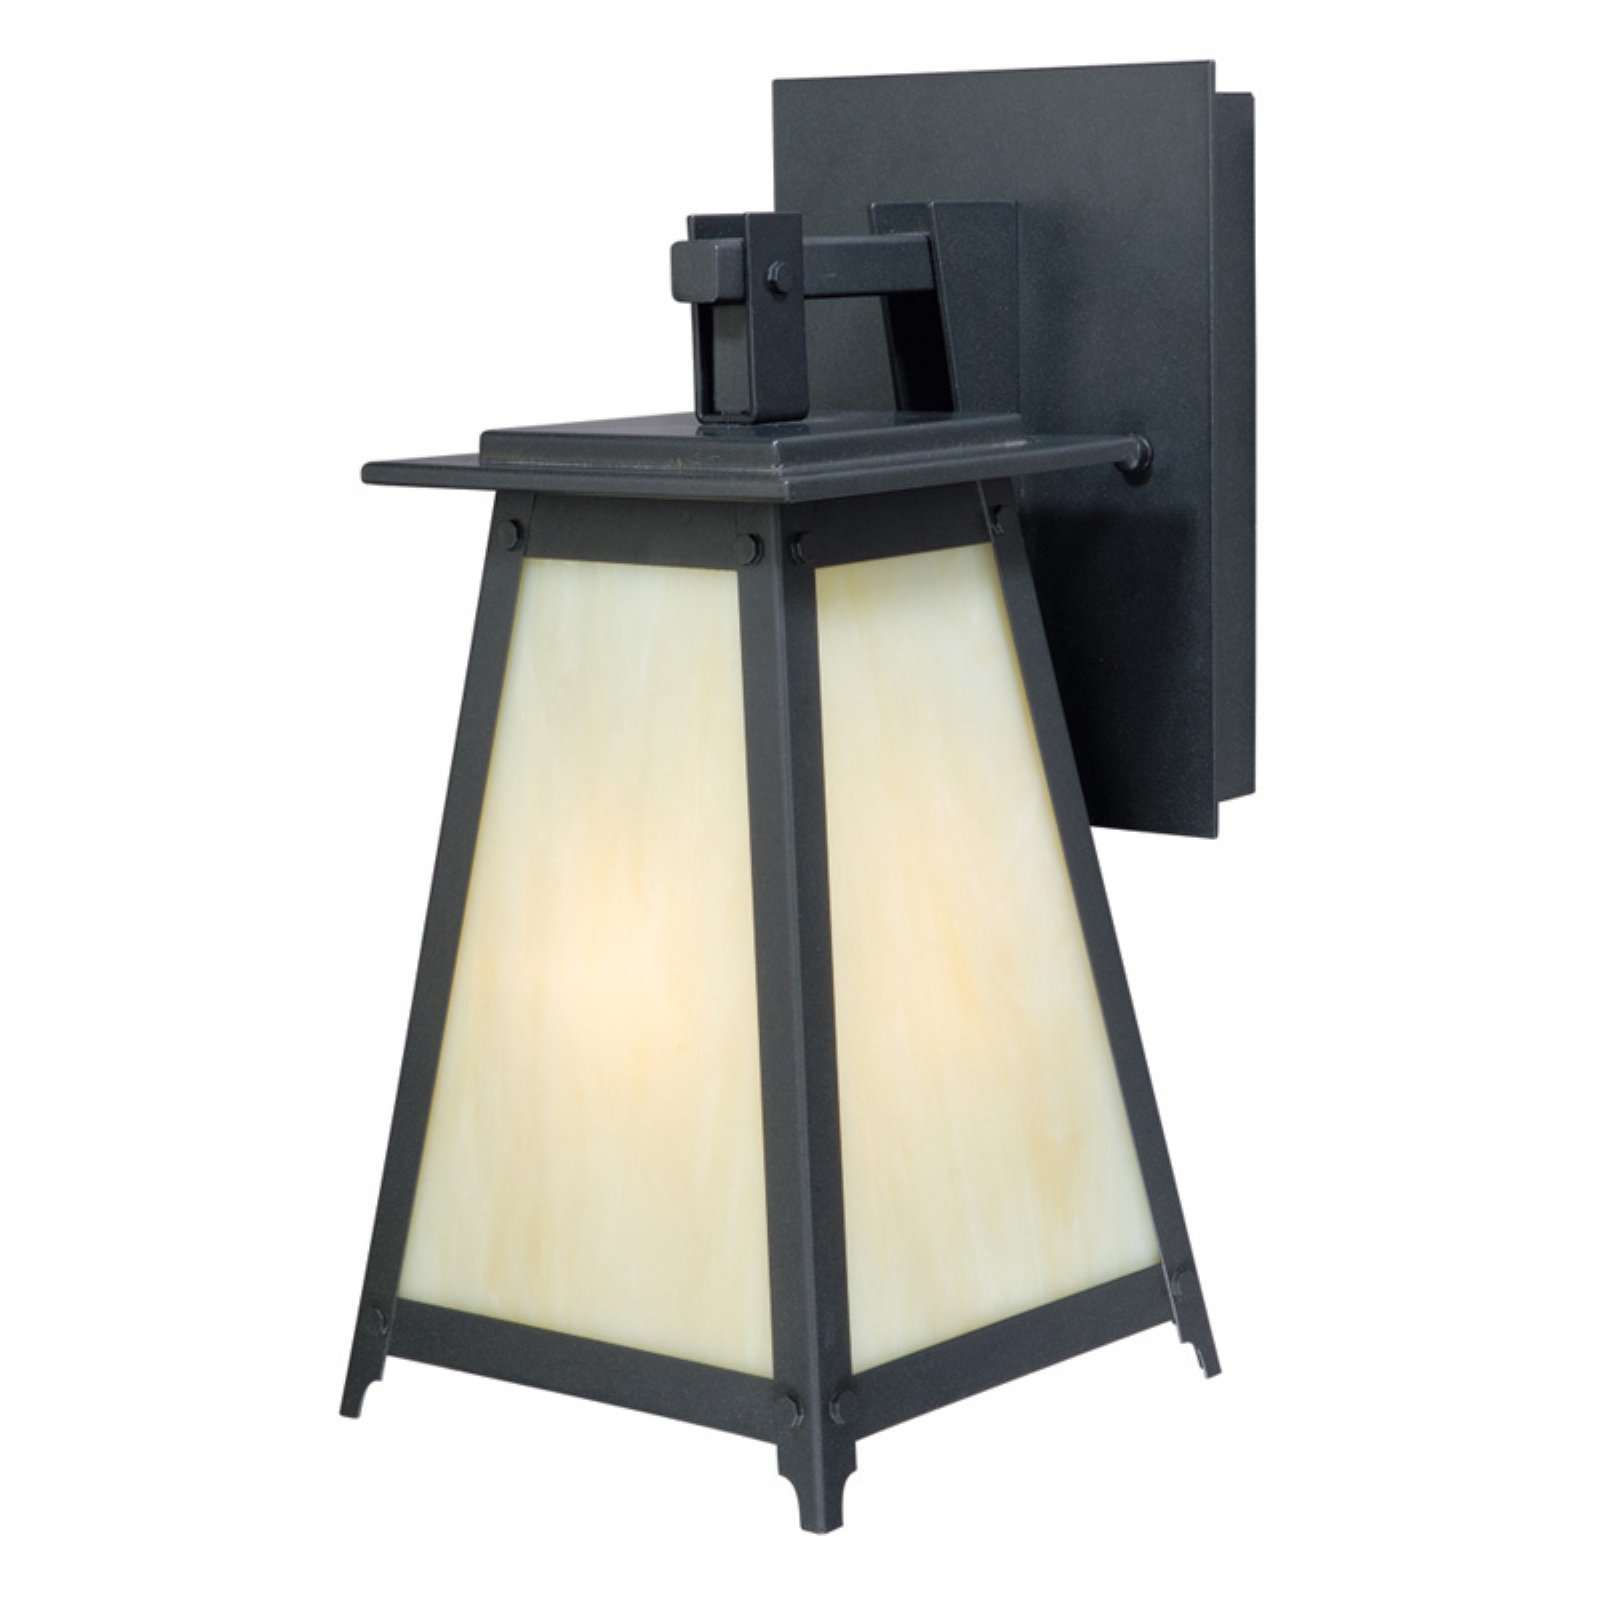 Vaxcel Prairieview T002 Outdoor Wall Sconce